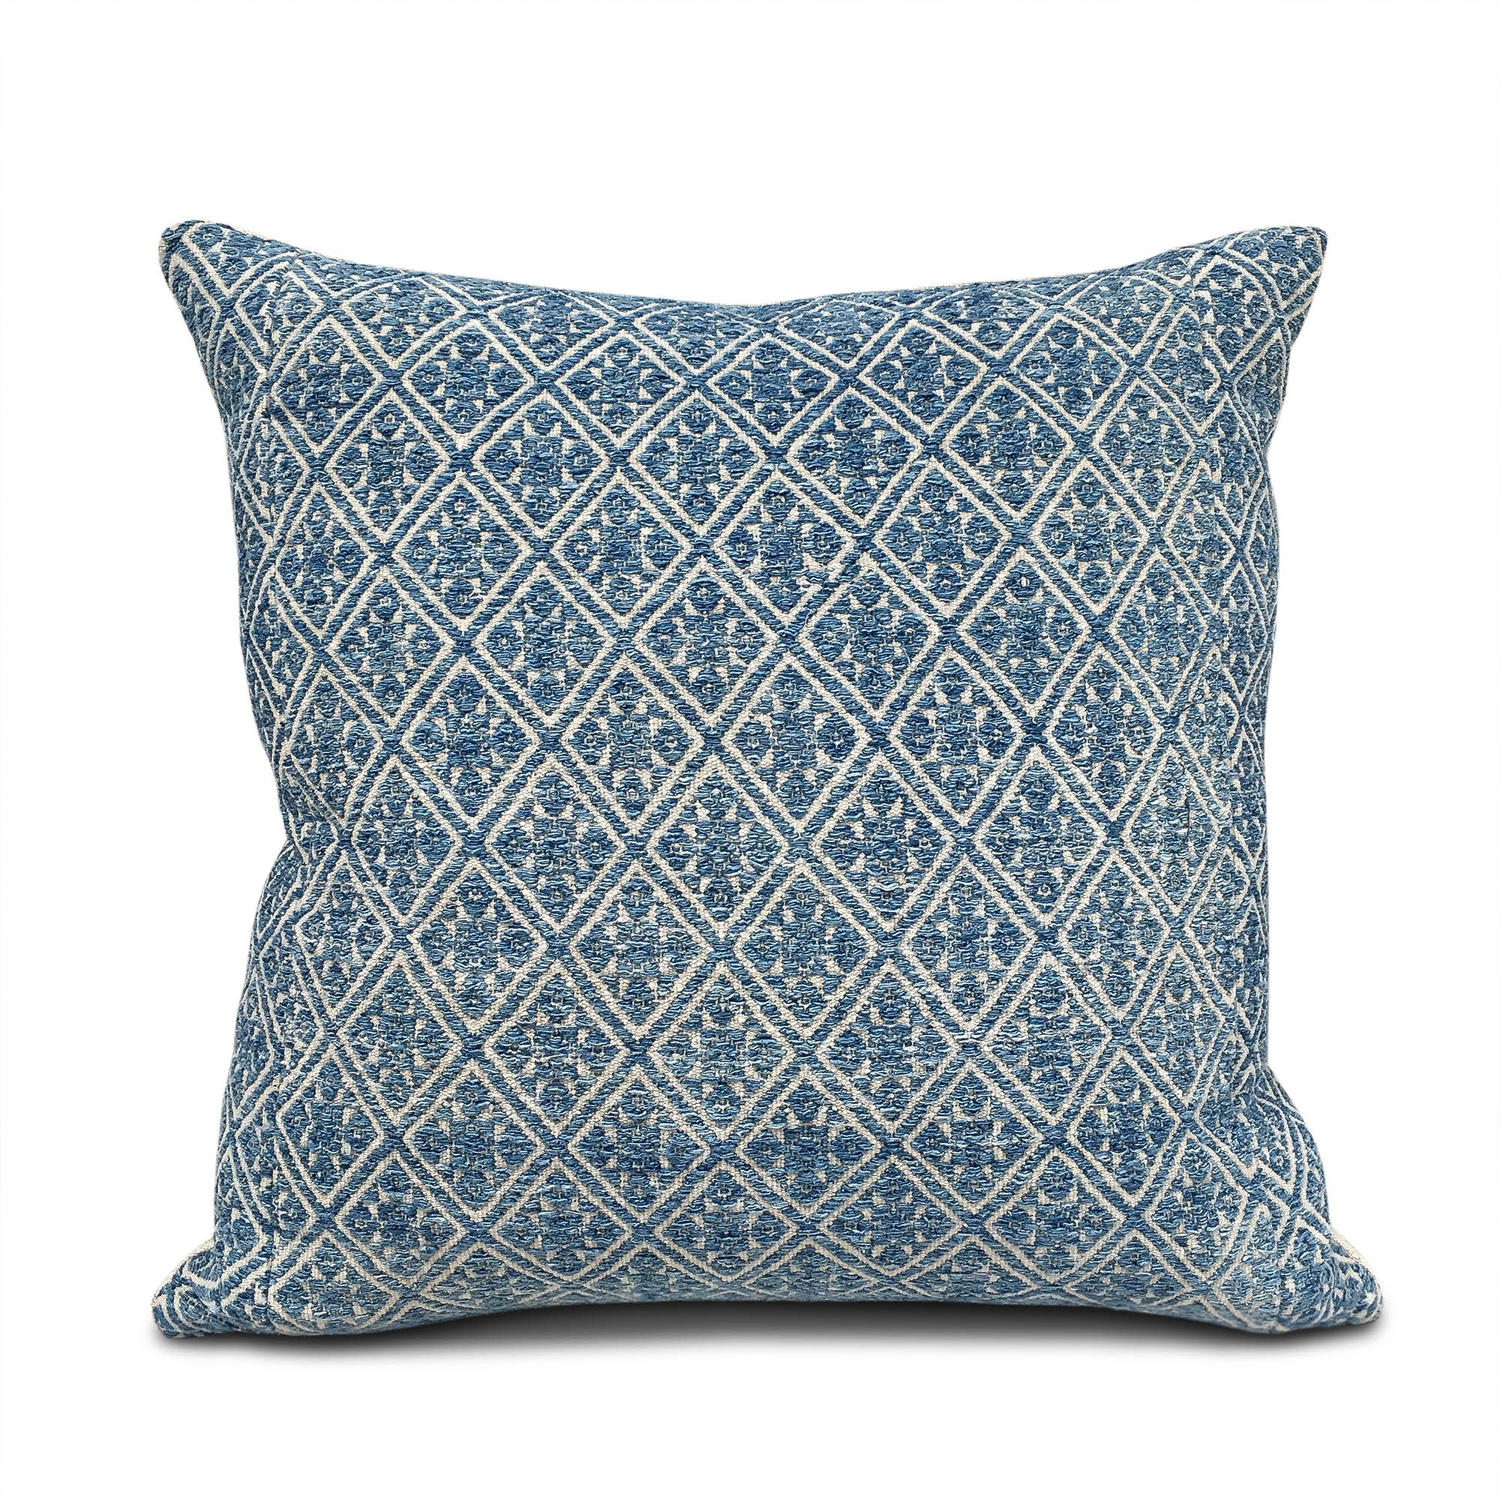 Indigo Zhuang Wedding Banket Cushions